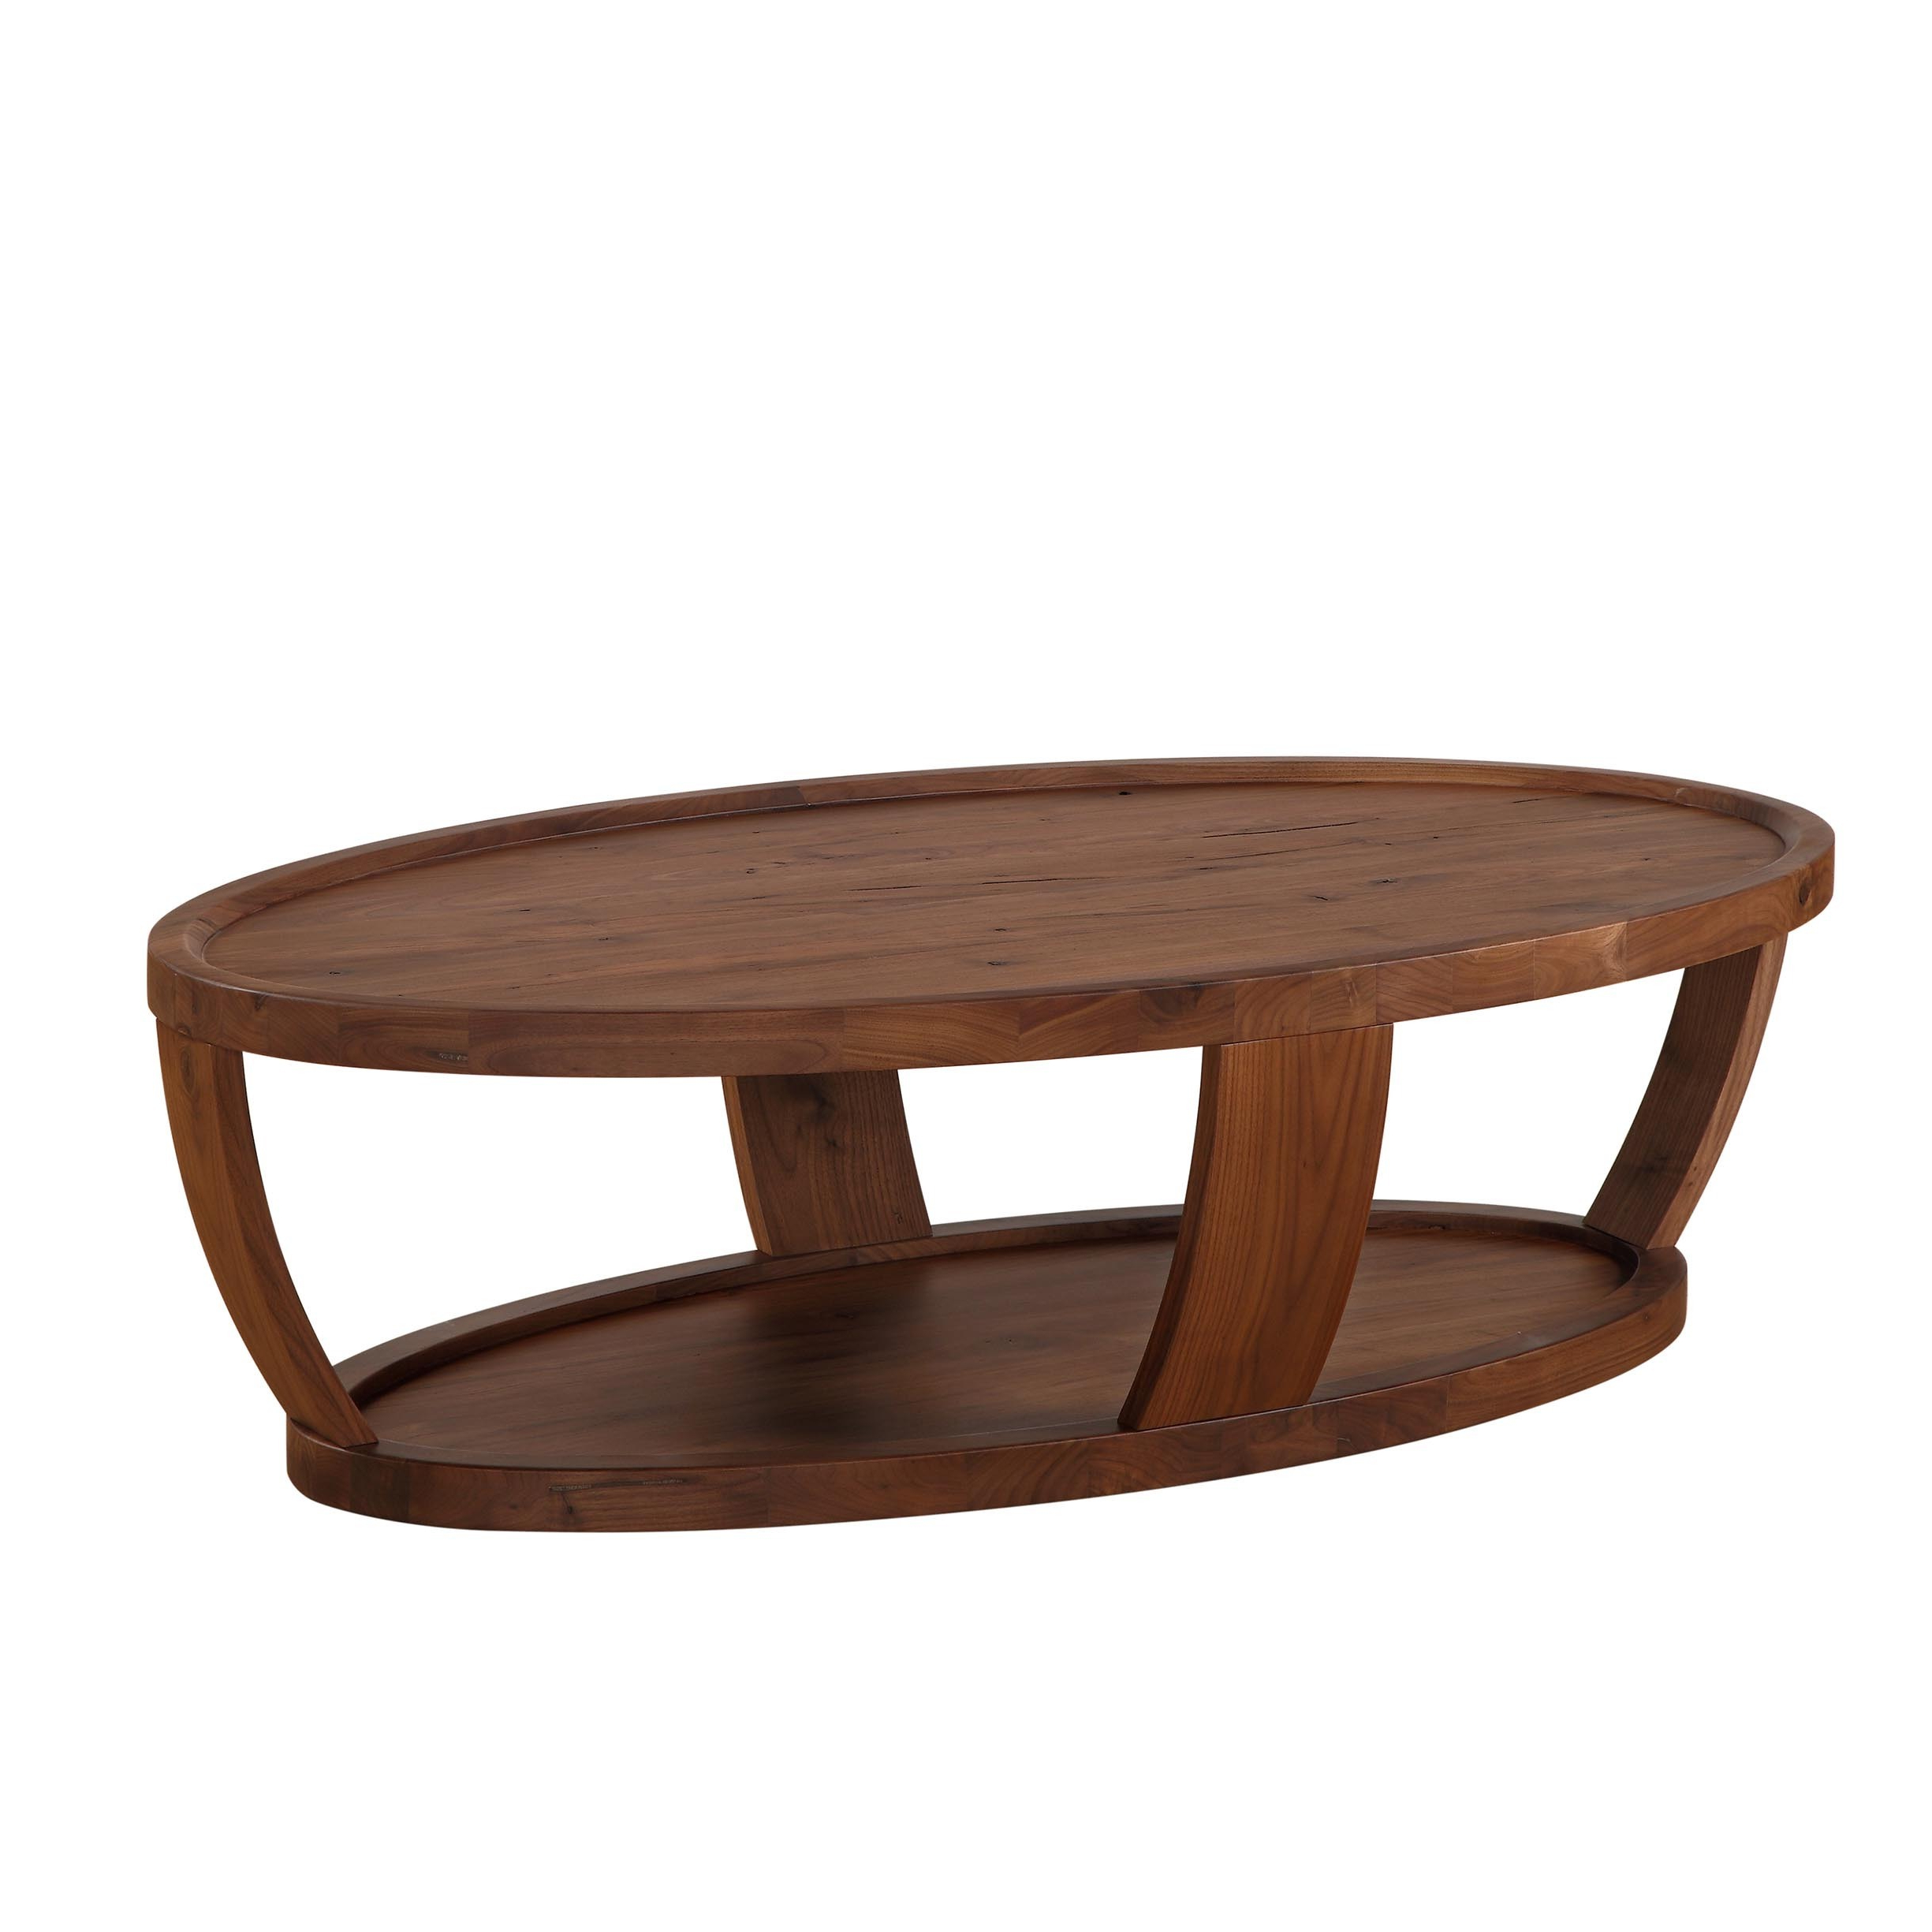 Craftsman Cocktail Tables Inside Latest Shop Aurelle Home American Walnut Craftsman Coffee Table – On Sale (Gallery 6 of 20)